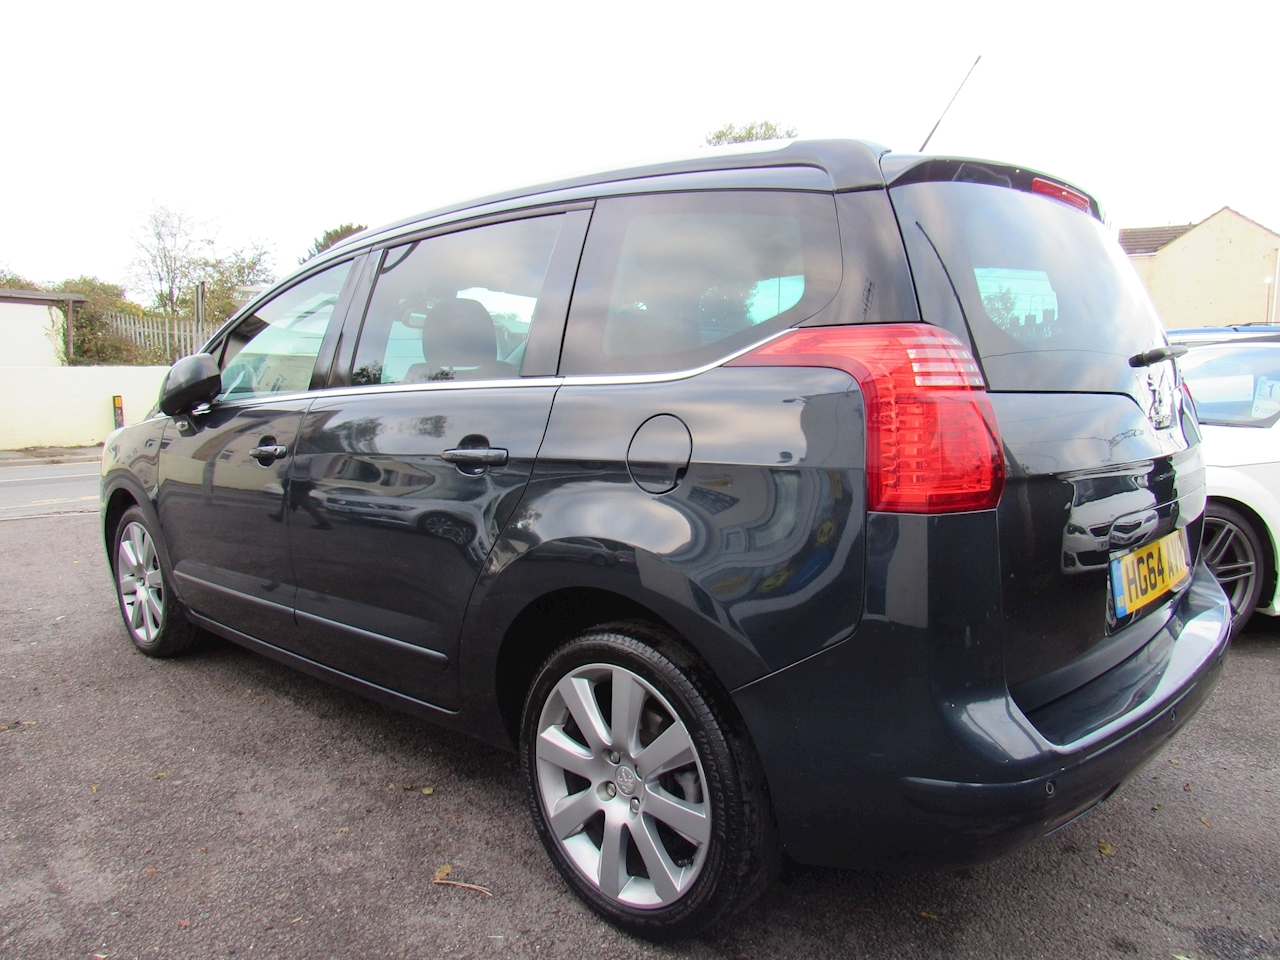 5008 Allure MPV 2.0 Manual Diesel